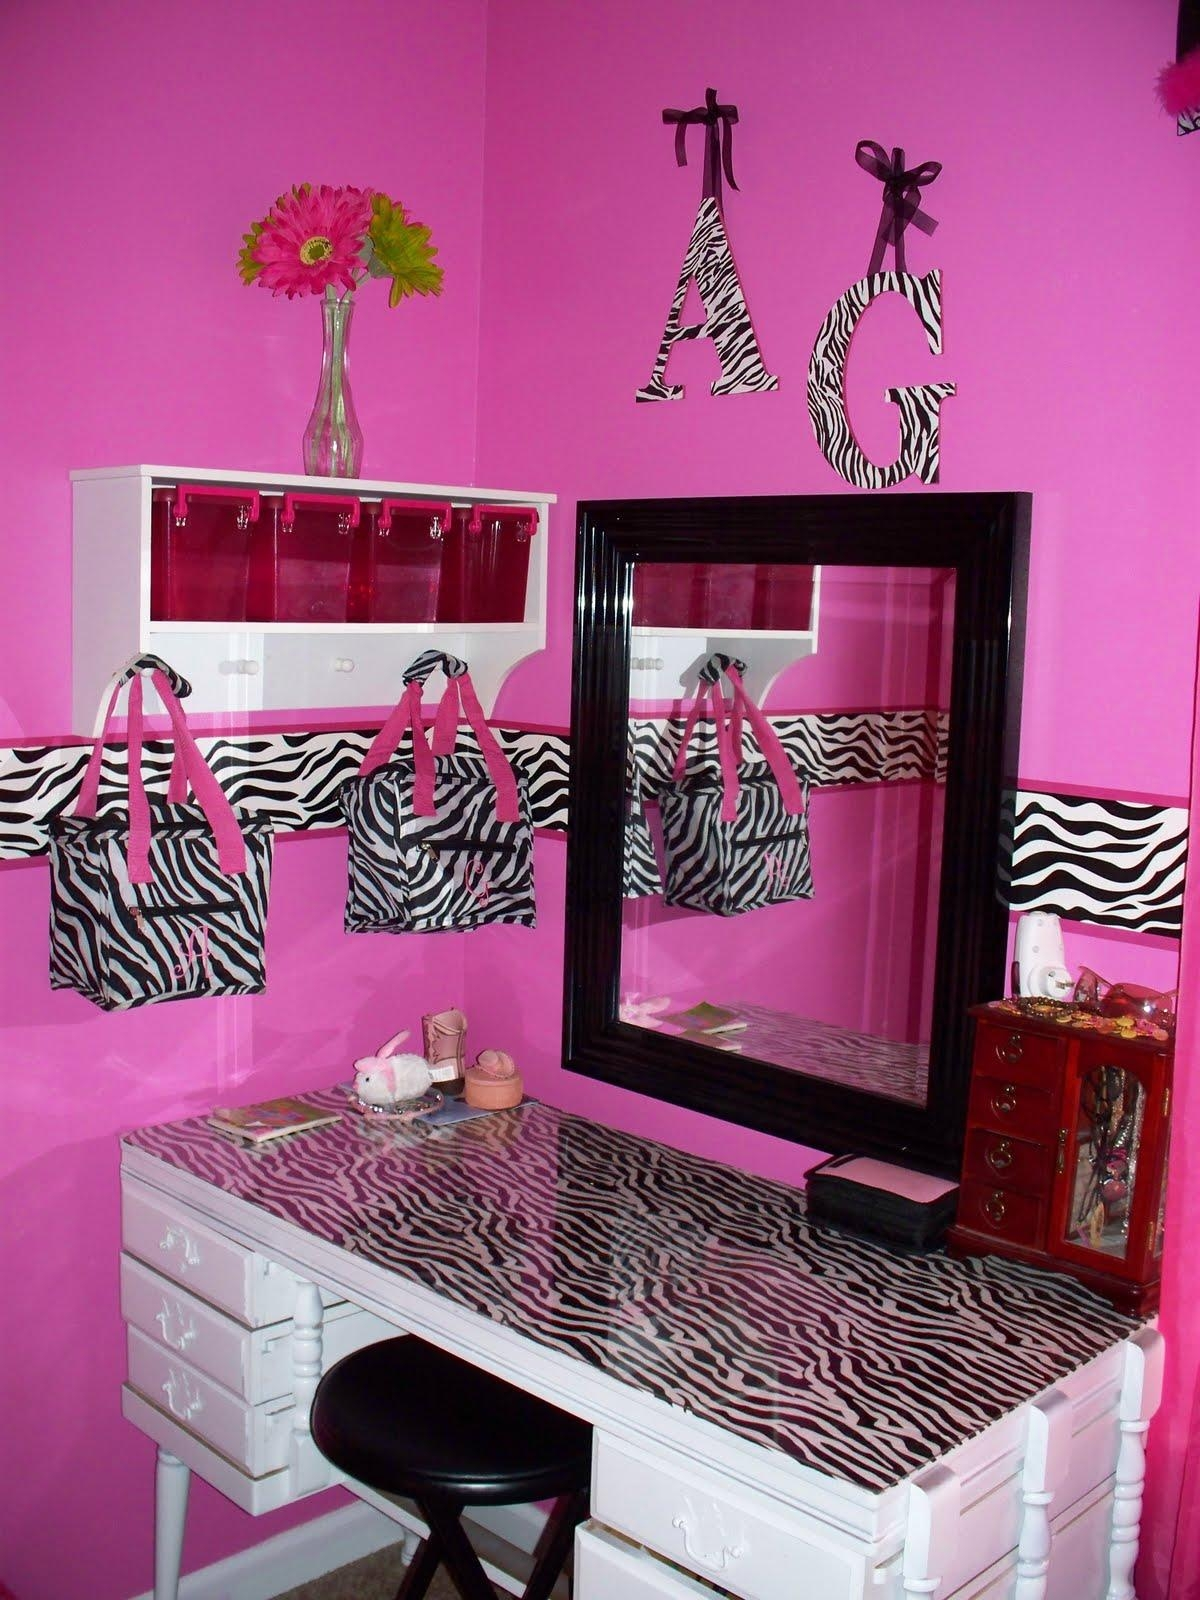 Bedroom : Awesome Bedroom Coolest Room Ideas For Teenage Girls Within Kids Sofa Chair And Ottoman Set Zebra (Image 4 of 20)